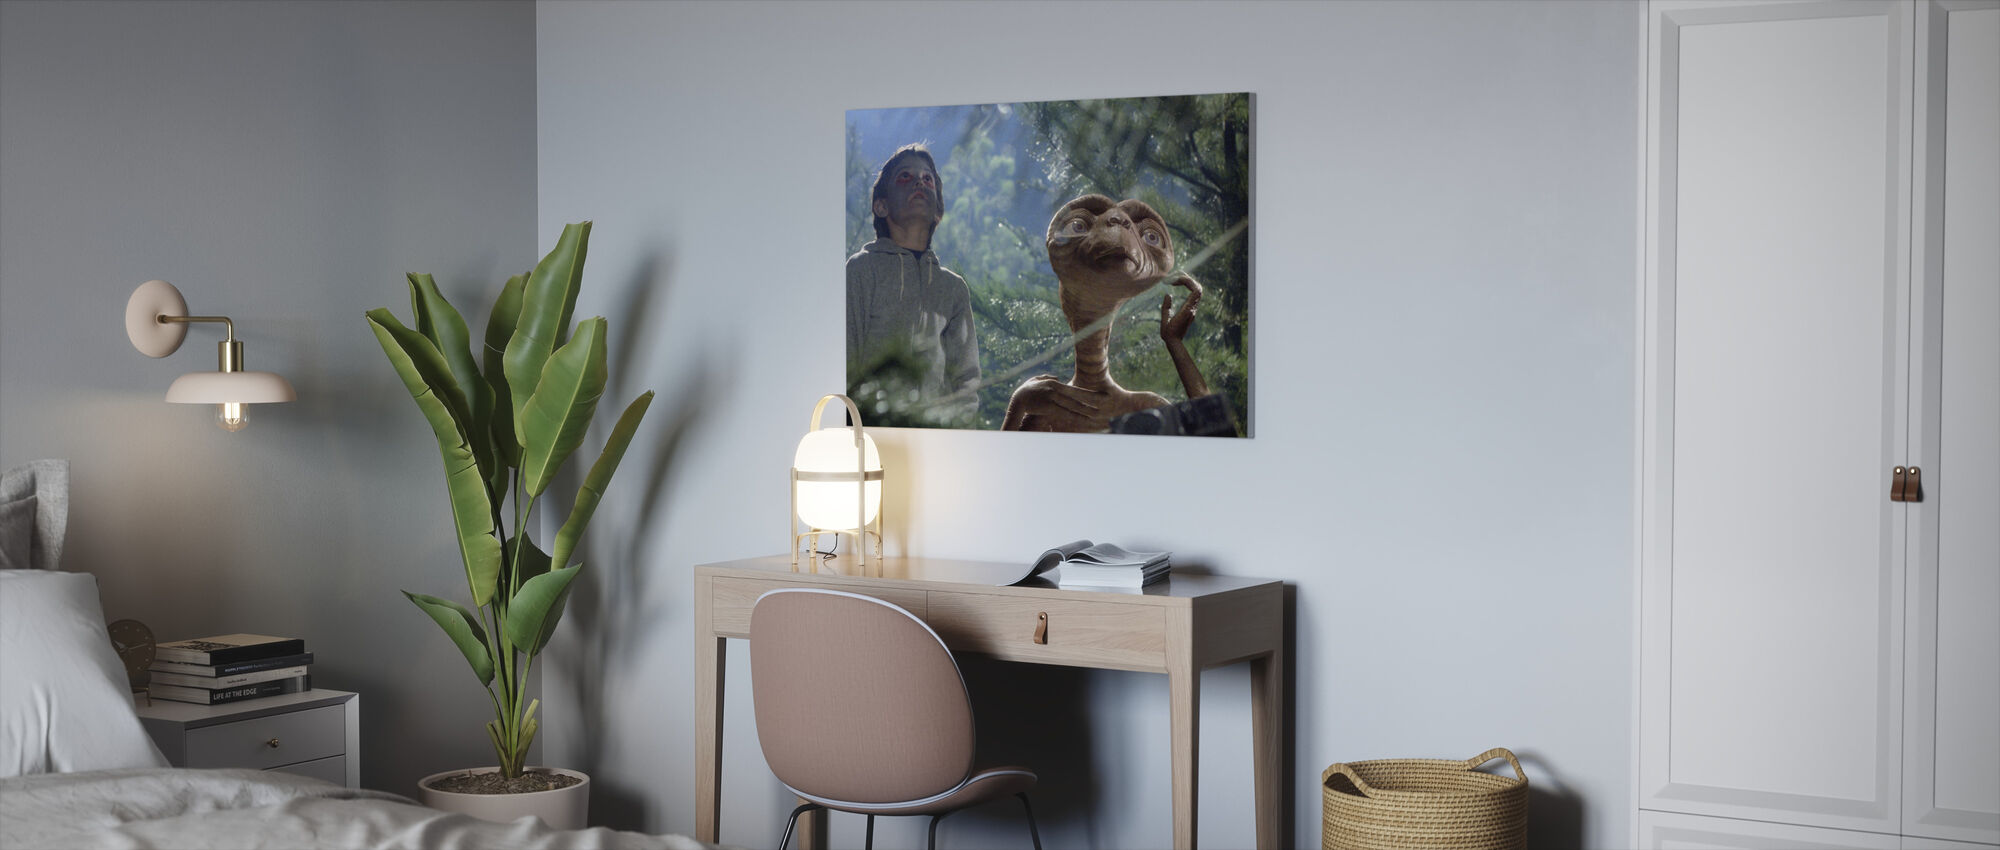 Extra Terrestrial - Henry Thomas - Canvas print - Office